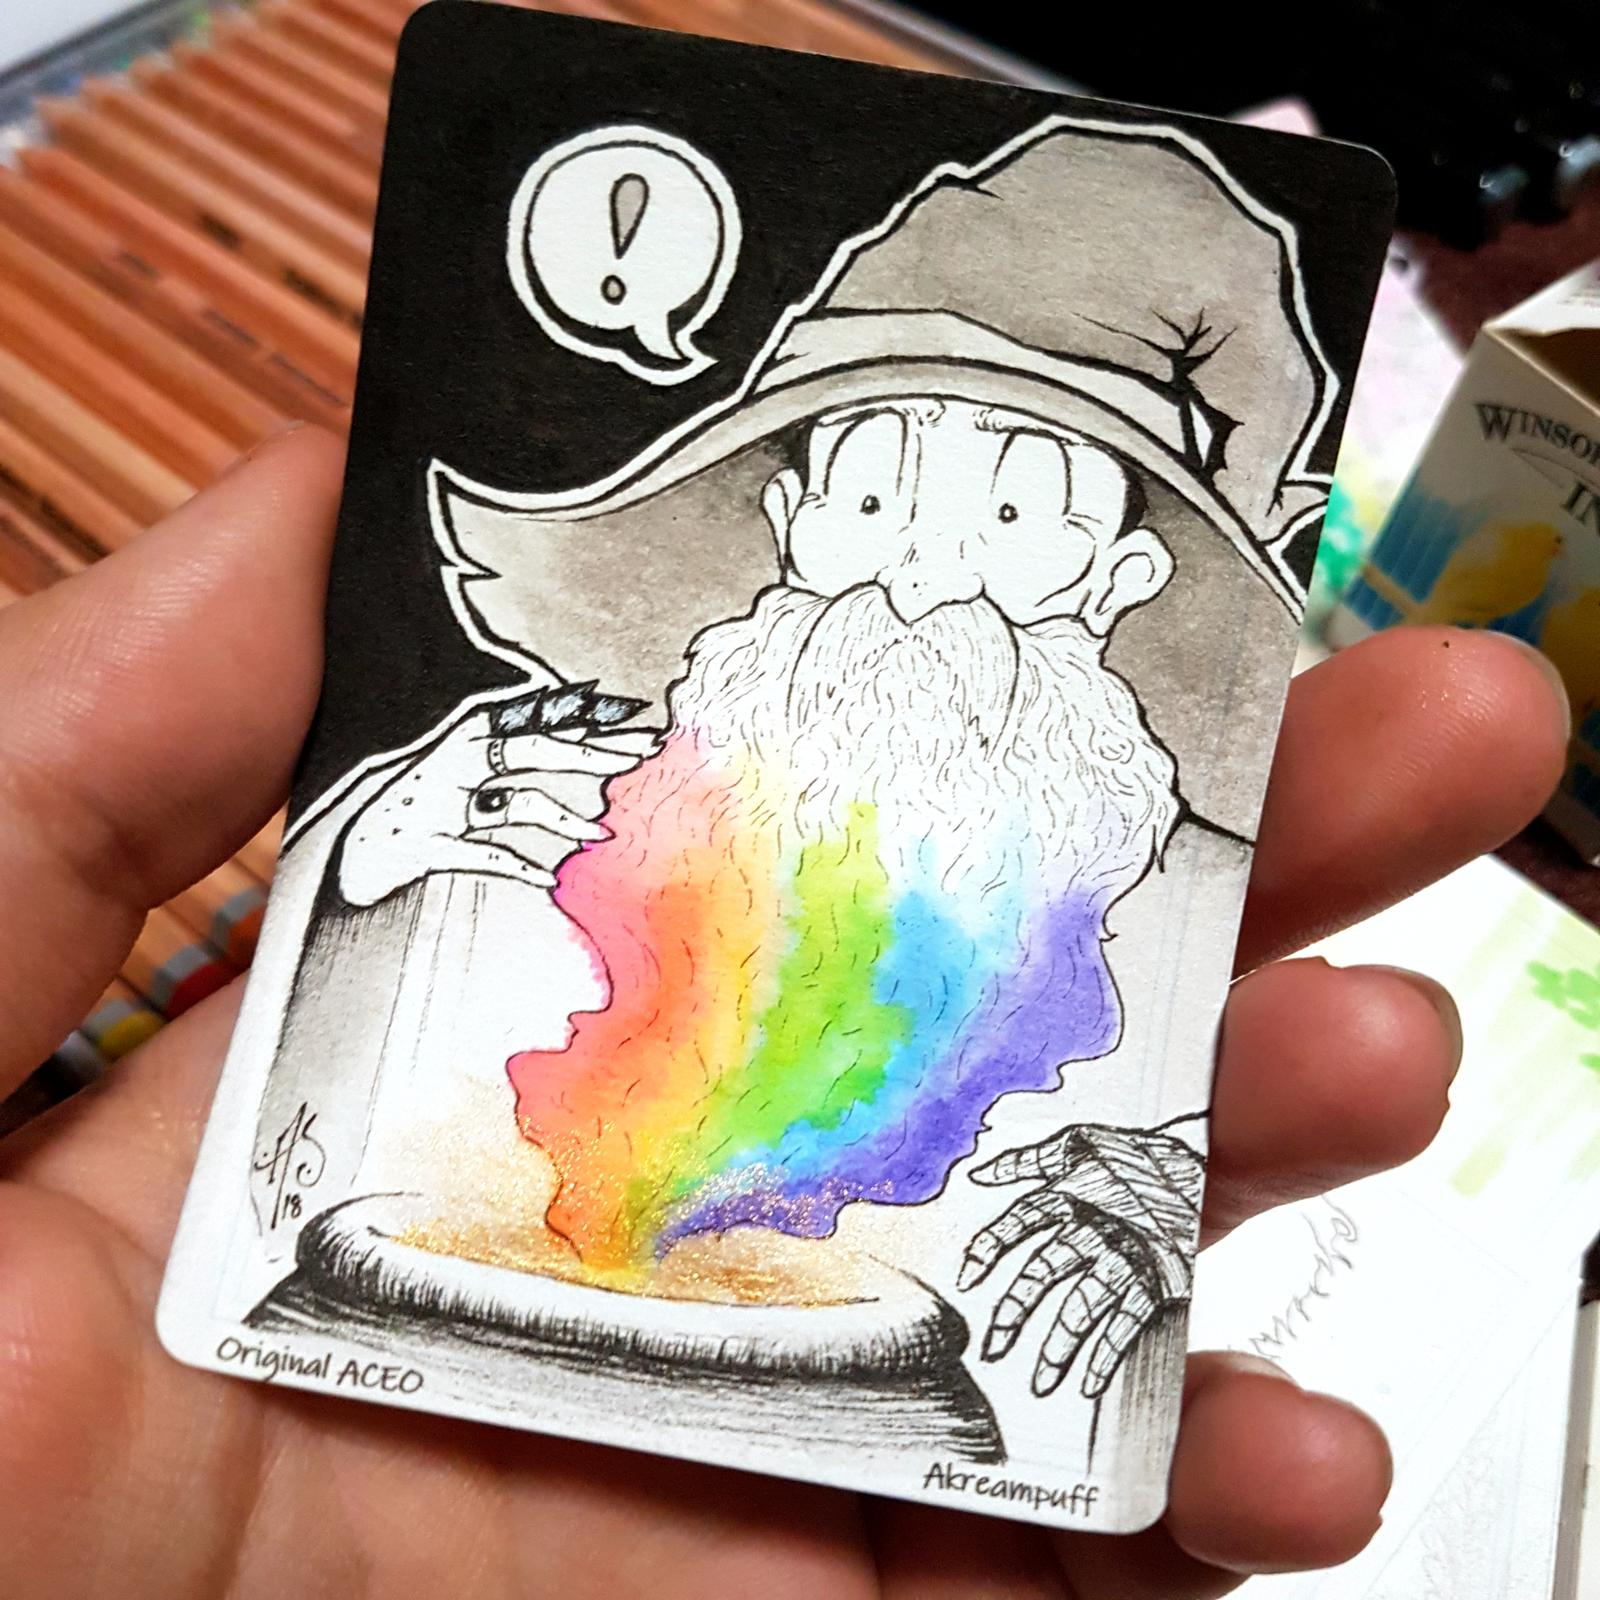 Akreampuff's original ACEO cards are available for $10 or less!